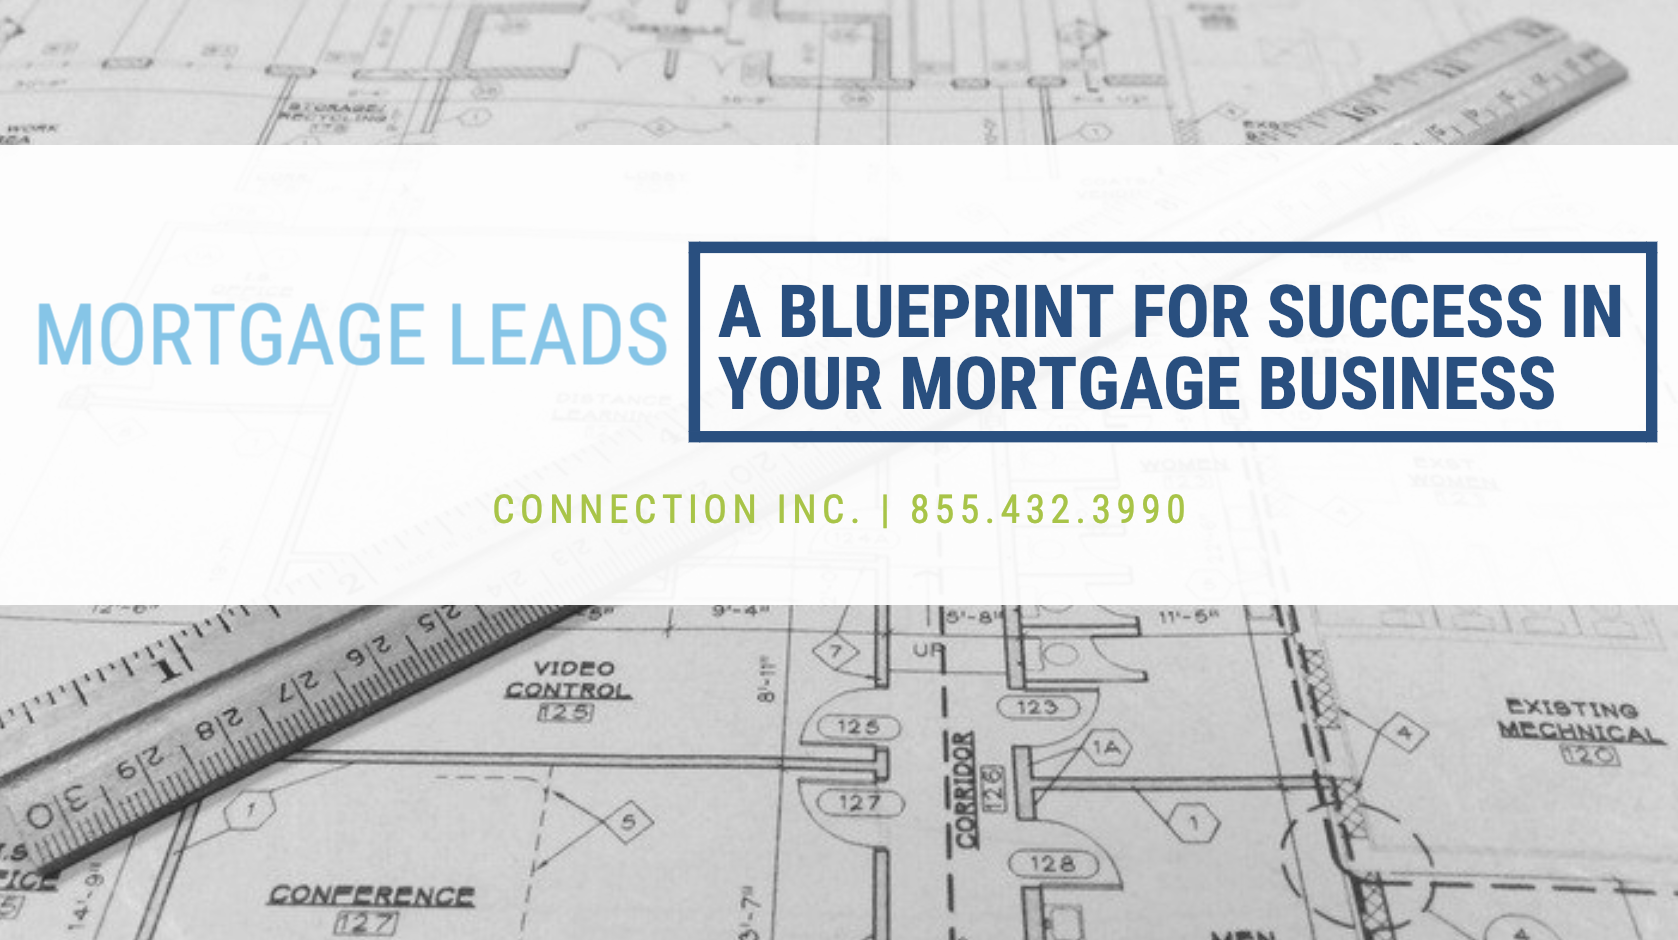 Mortgage Leads - A Blueprint for Success in Your Mortgage Business